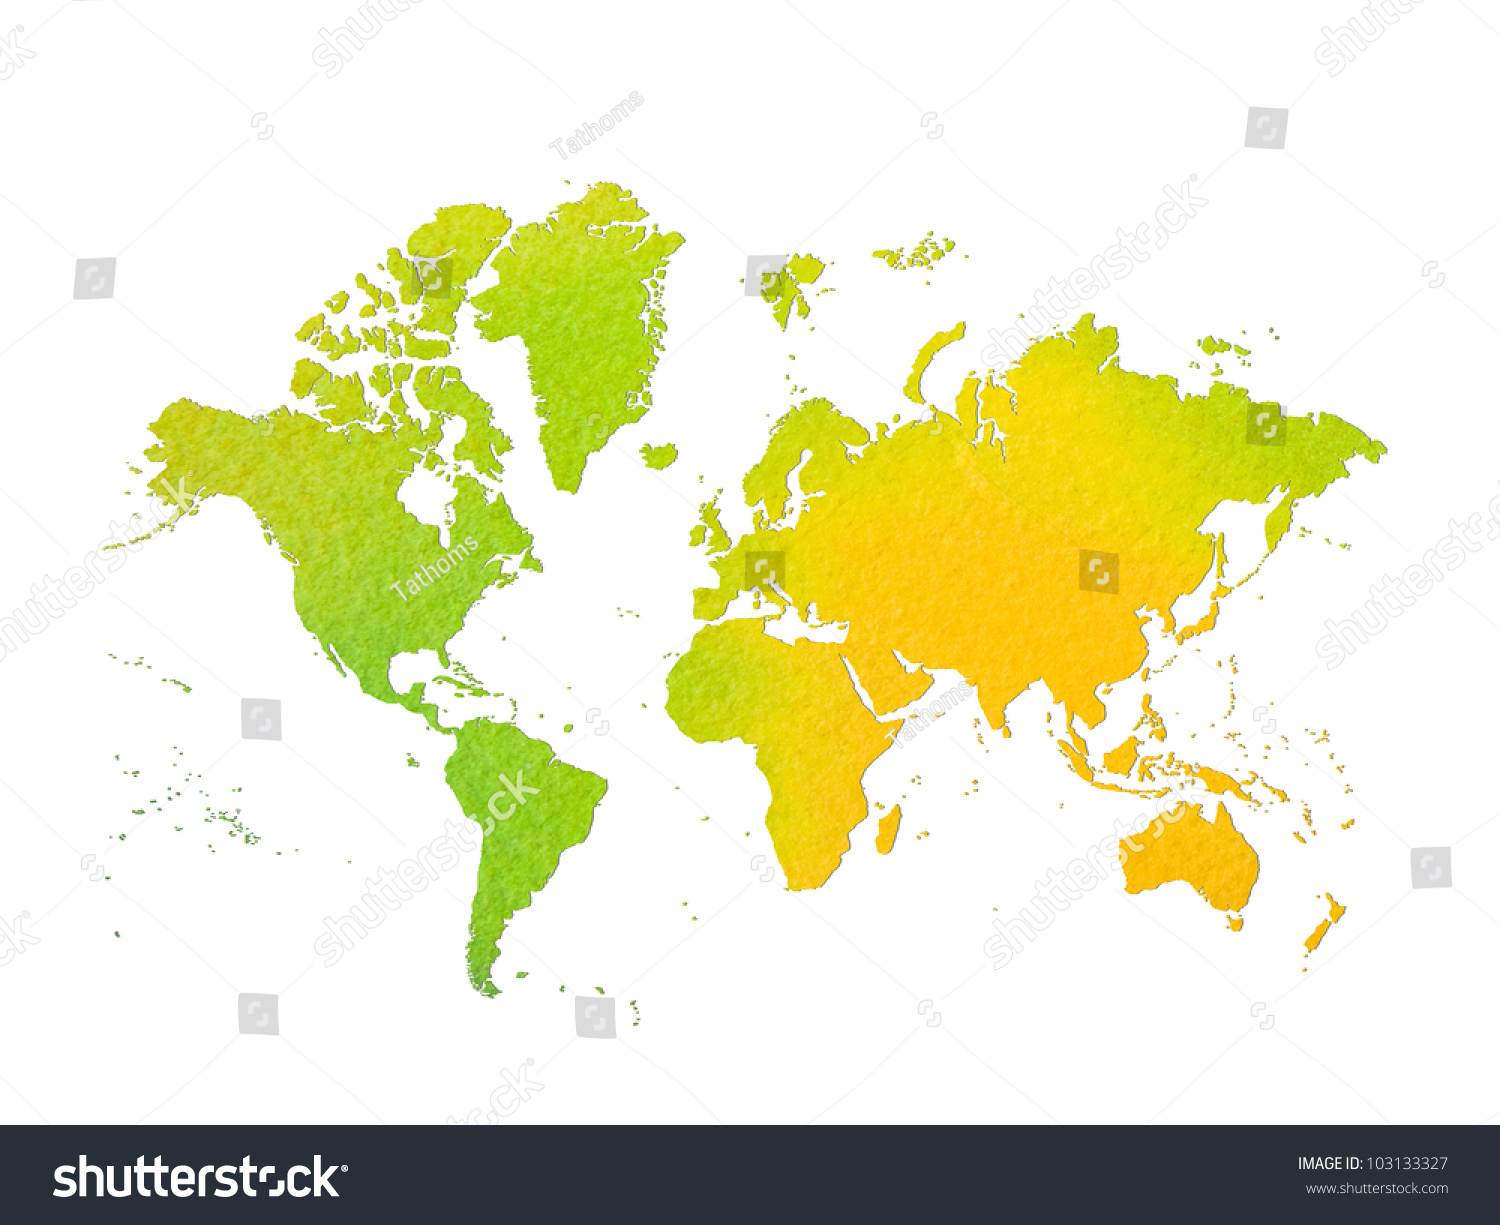 stock-photo-world-map-ready-for-your-add